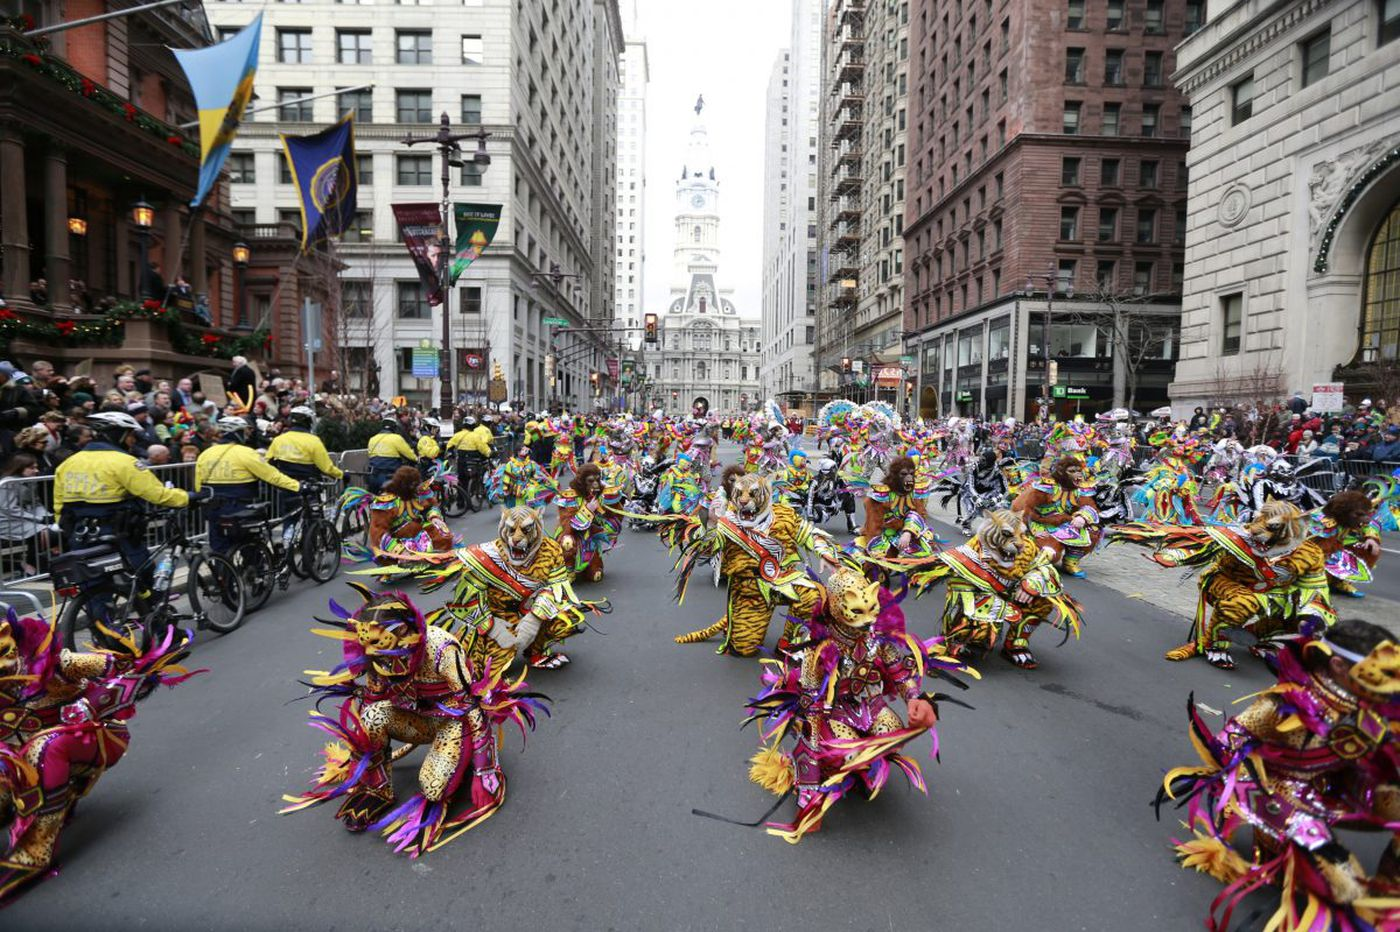 Deep freeze forces Mummers, city to consider postponing parade